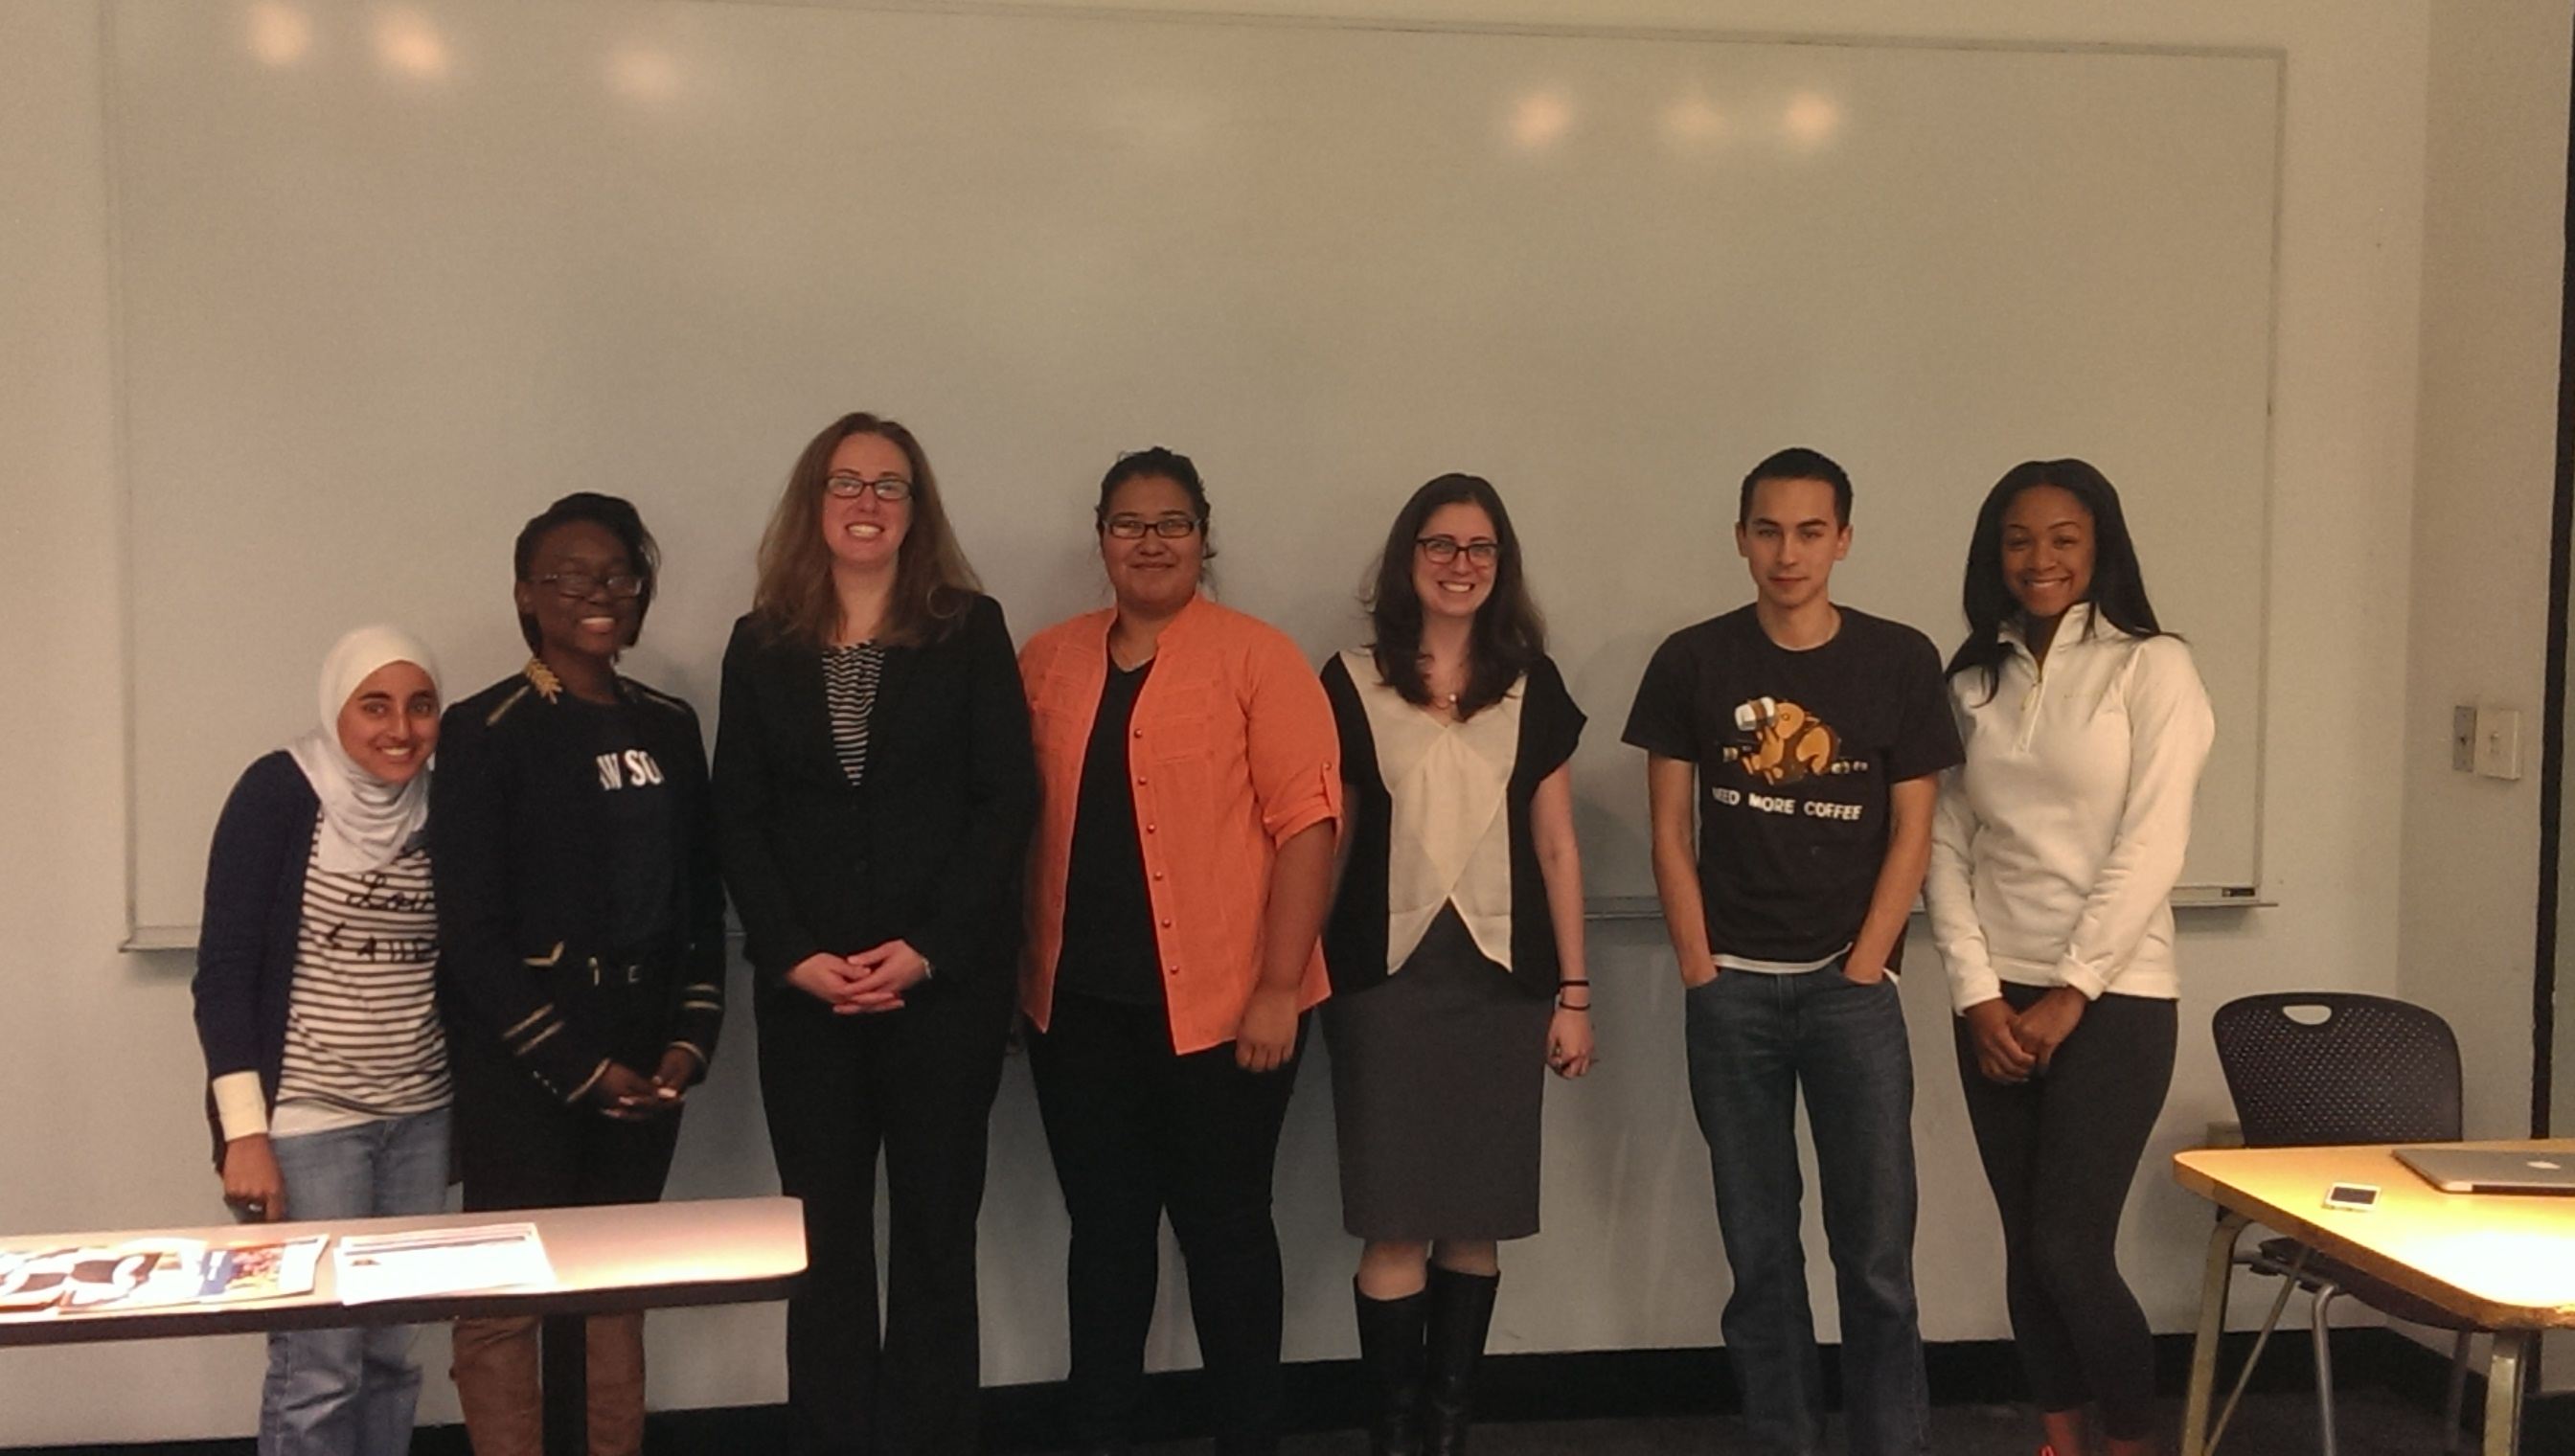 Pre-Law Society Members with Professors Jordan Paradise (Seton Hall School of Law) and Alison Lefkovitz (NJIT)